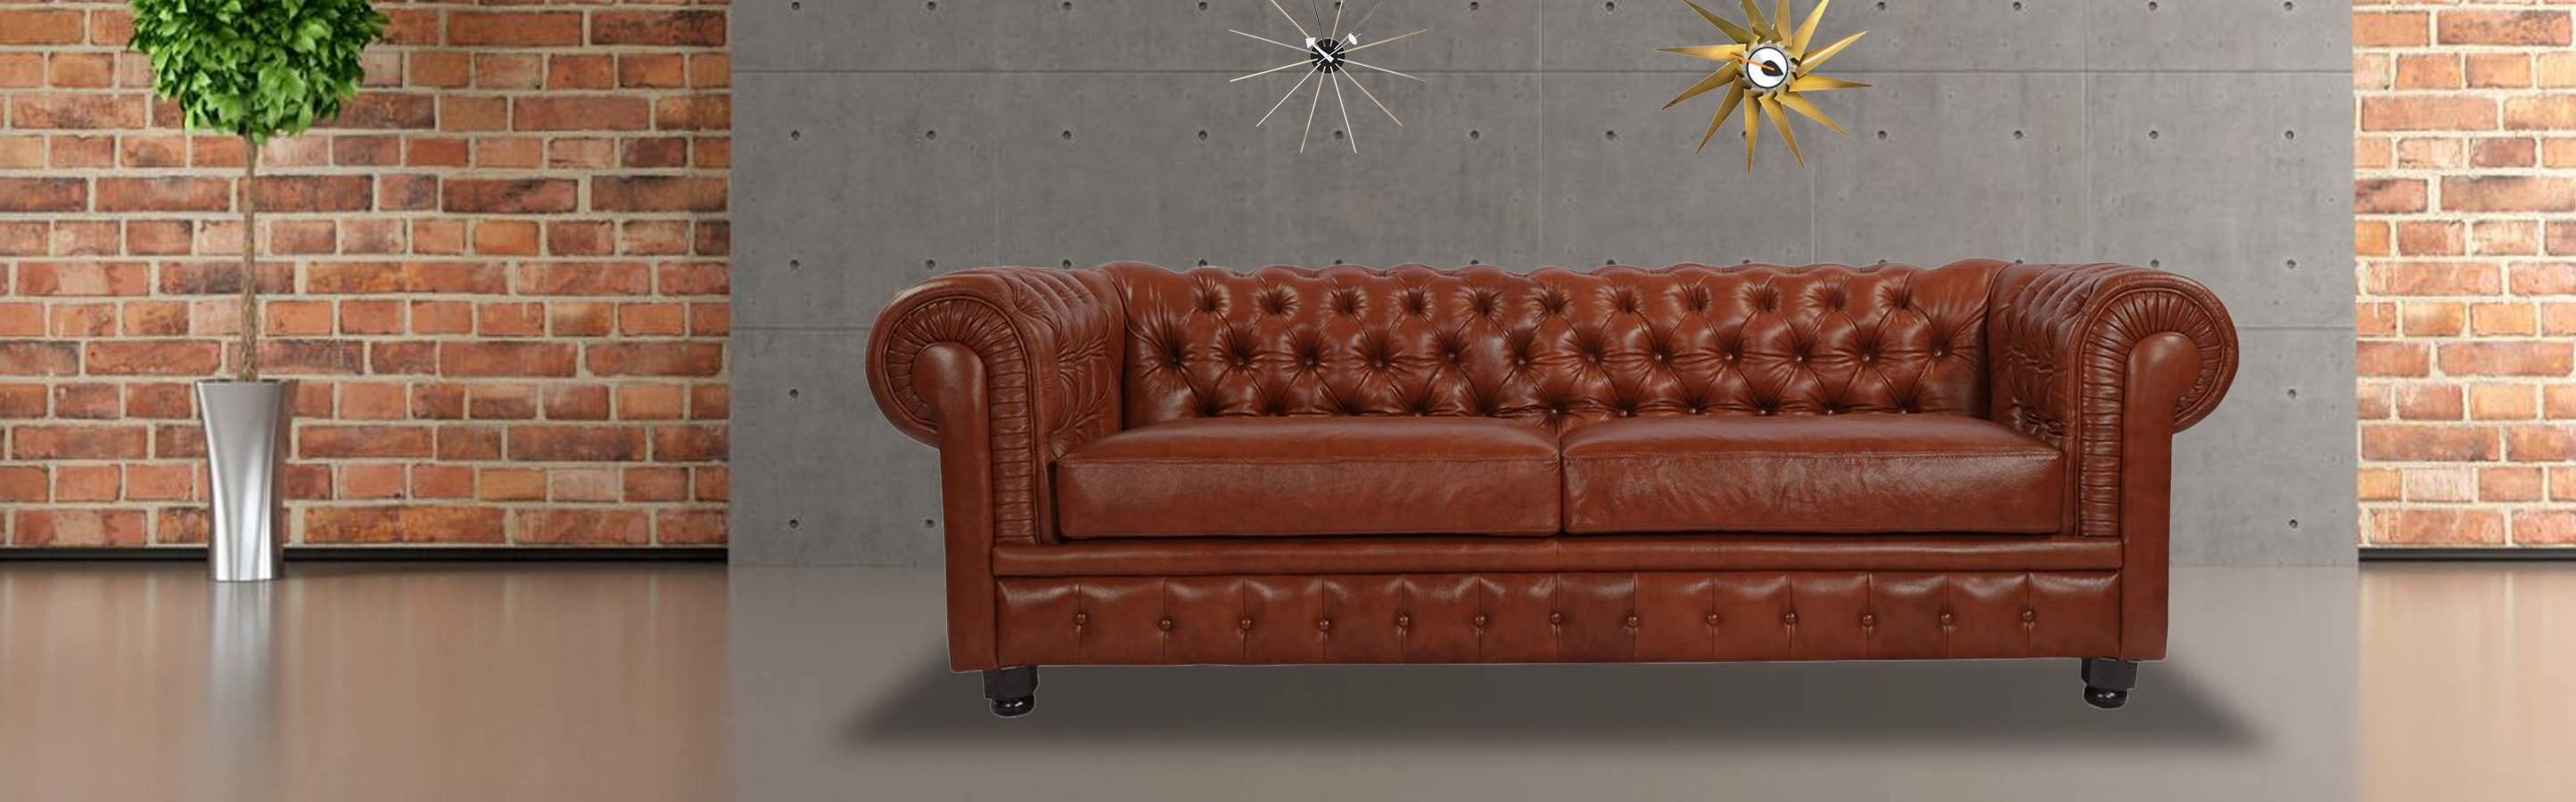 Chesterfield Sofa Bordeaux Premium Leather Kardiel Intended For Chesterfield Sofa And Chair (View 13 of 15)